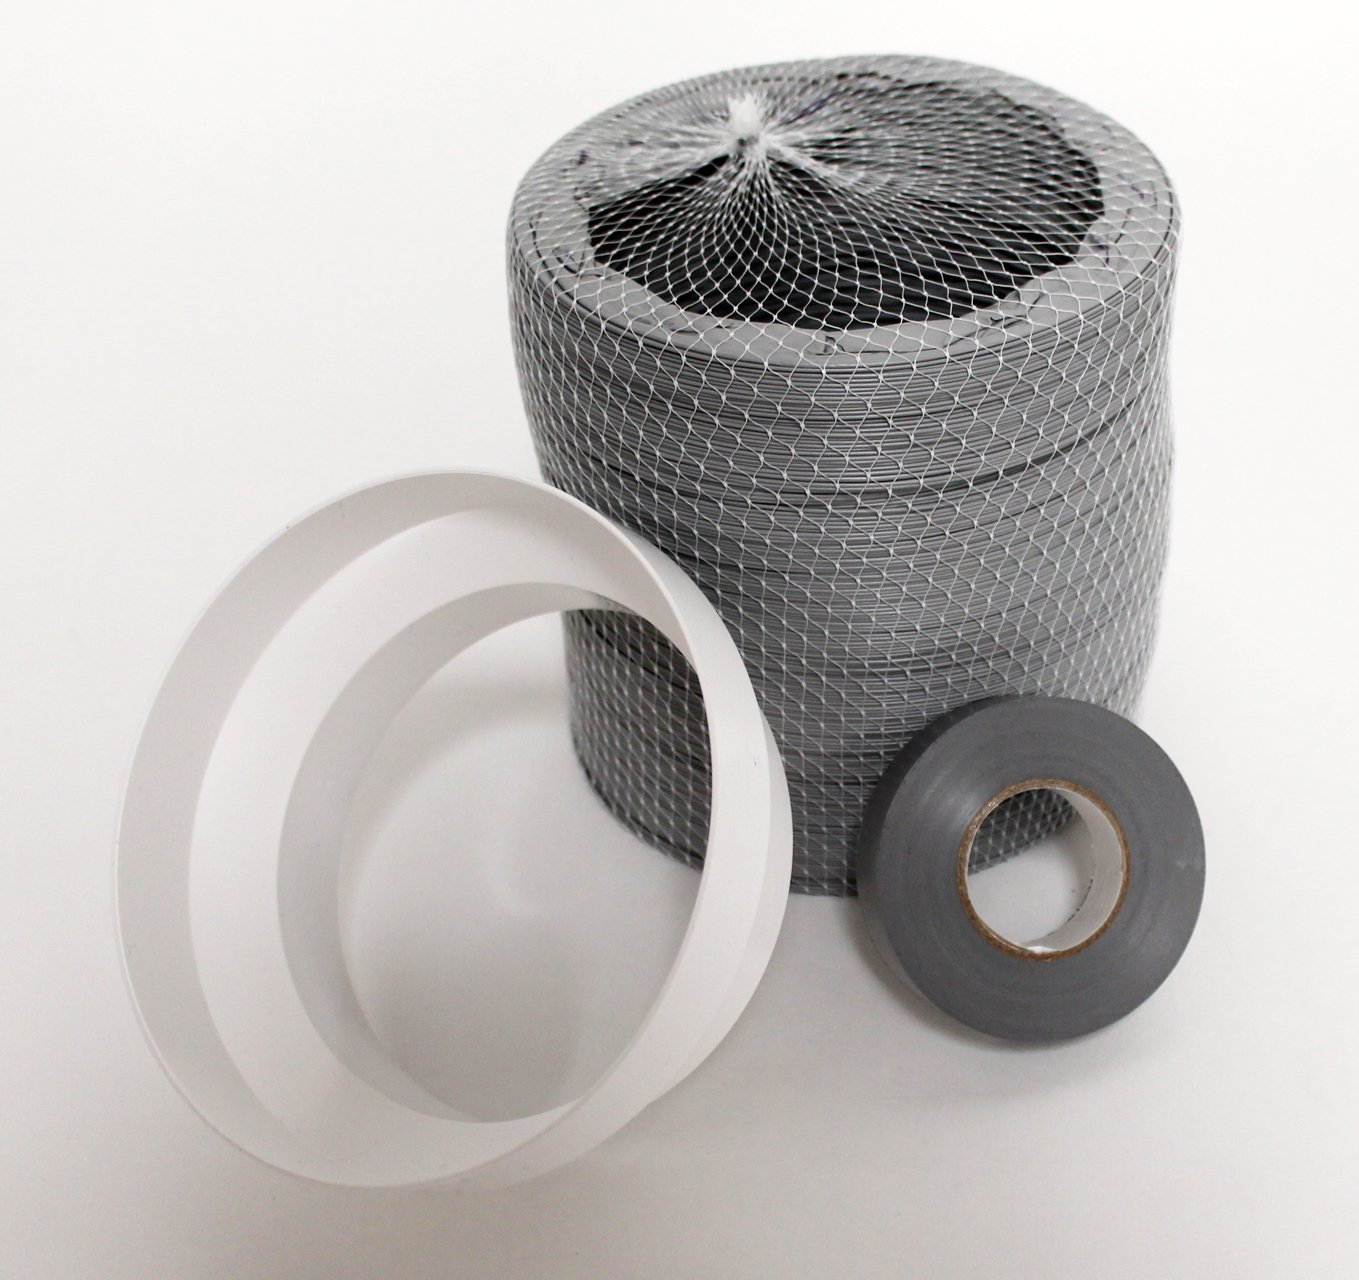 6 Meter Grey Extension Hose To Fit Portable Air Conditioners Connect Easily To Your Existing Vent Exhaust Hose Extending It By 6 Meters Certified